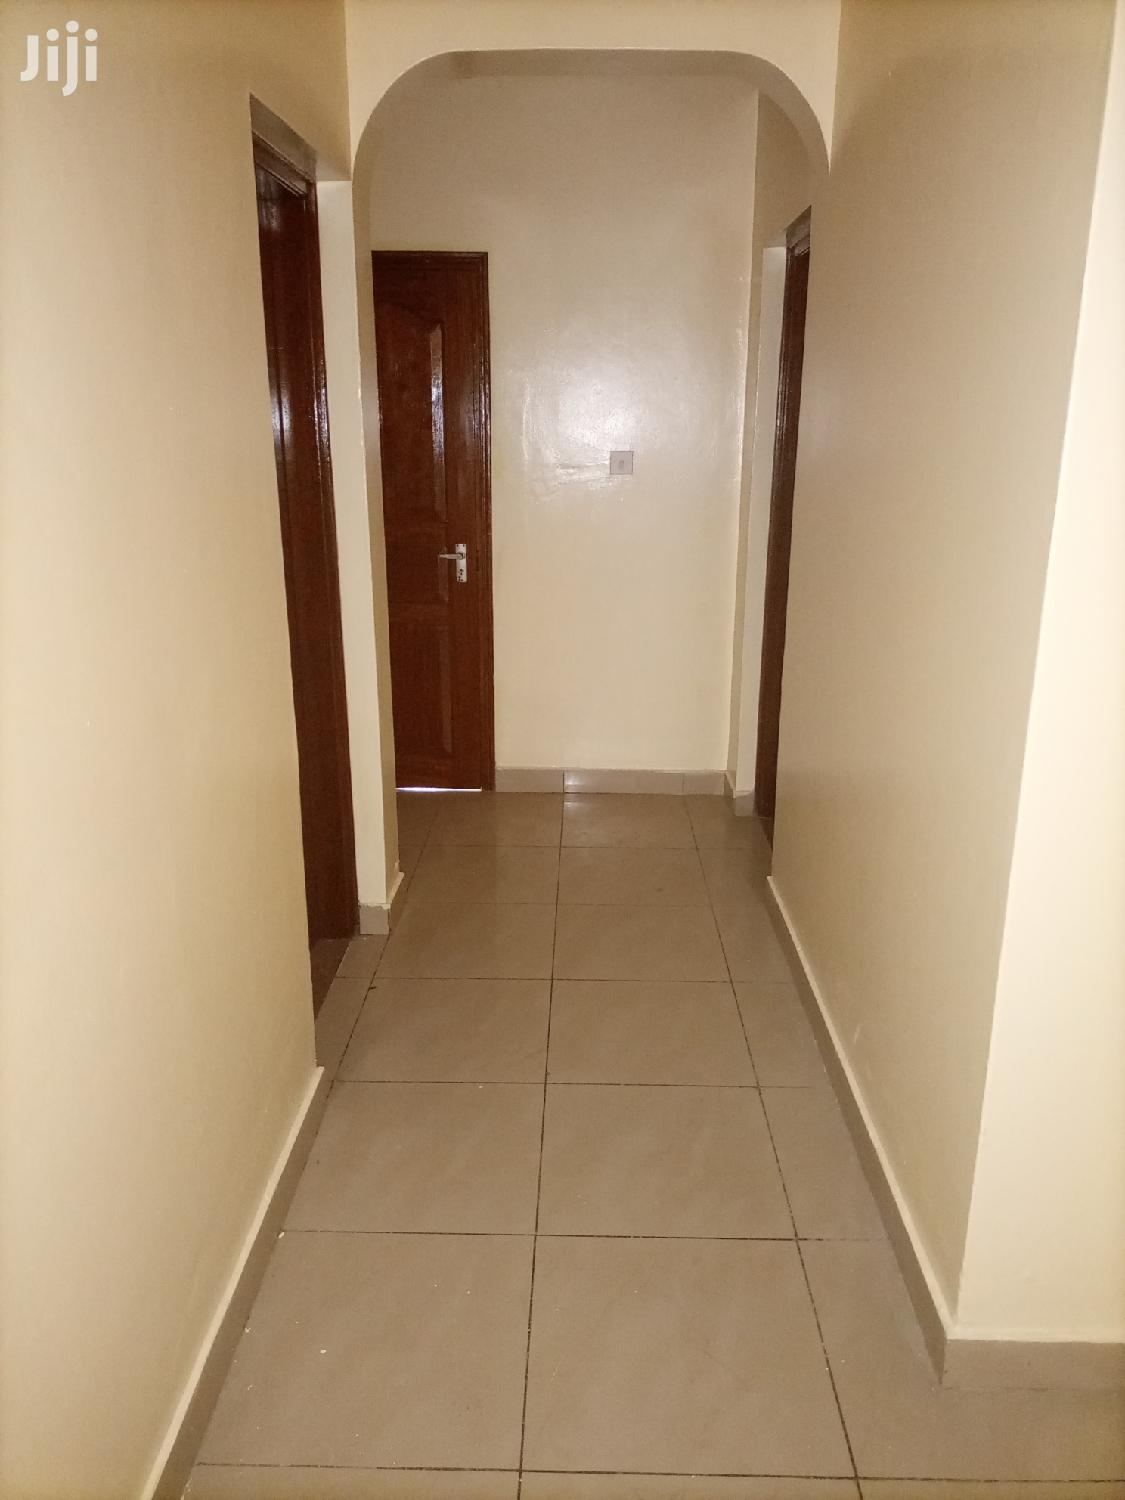 Nyali to Let: Spacious 3br,2ensuite Close to Public Transpor | Houses & Apartments For Rent for sale in Nyali, Mombasa, Kenya